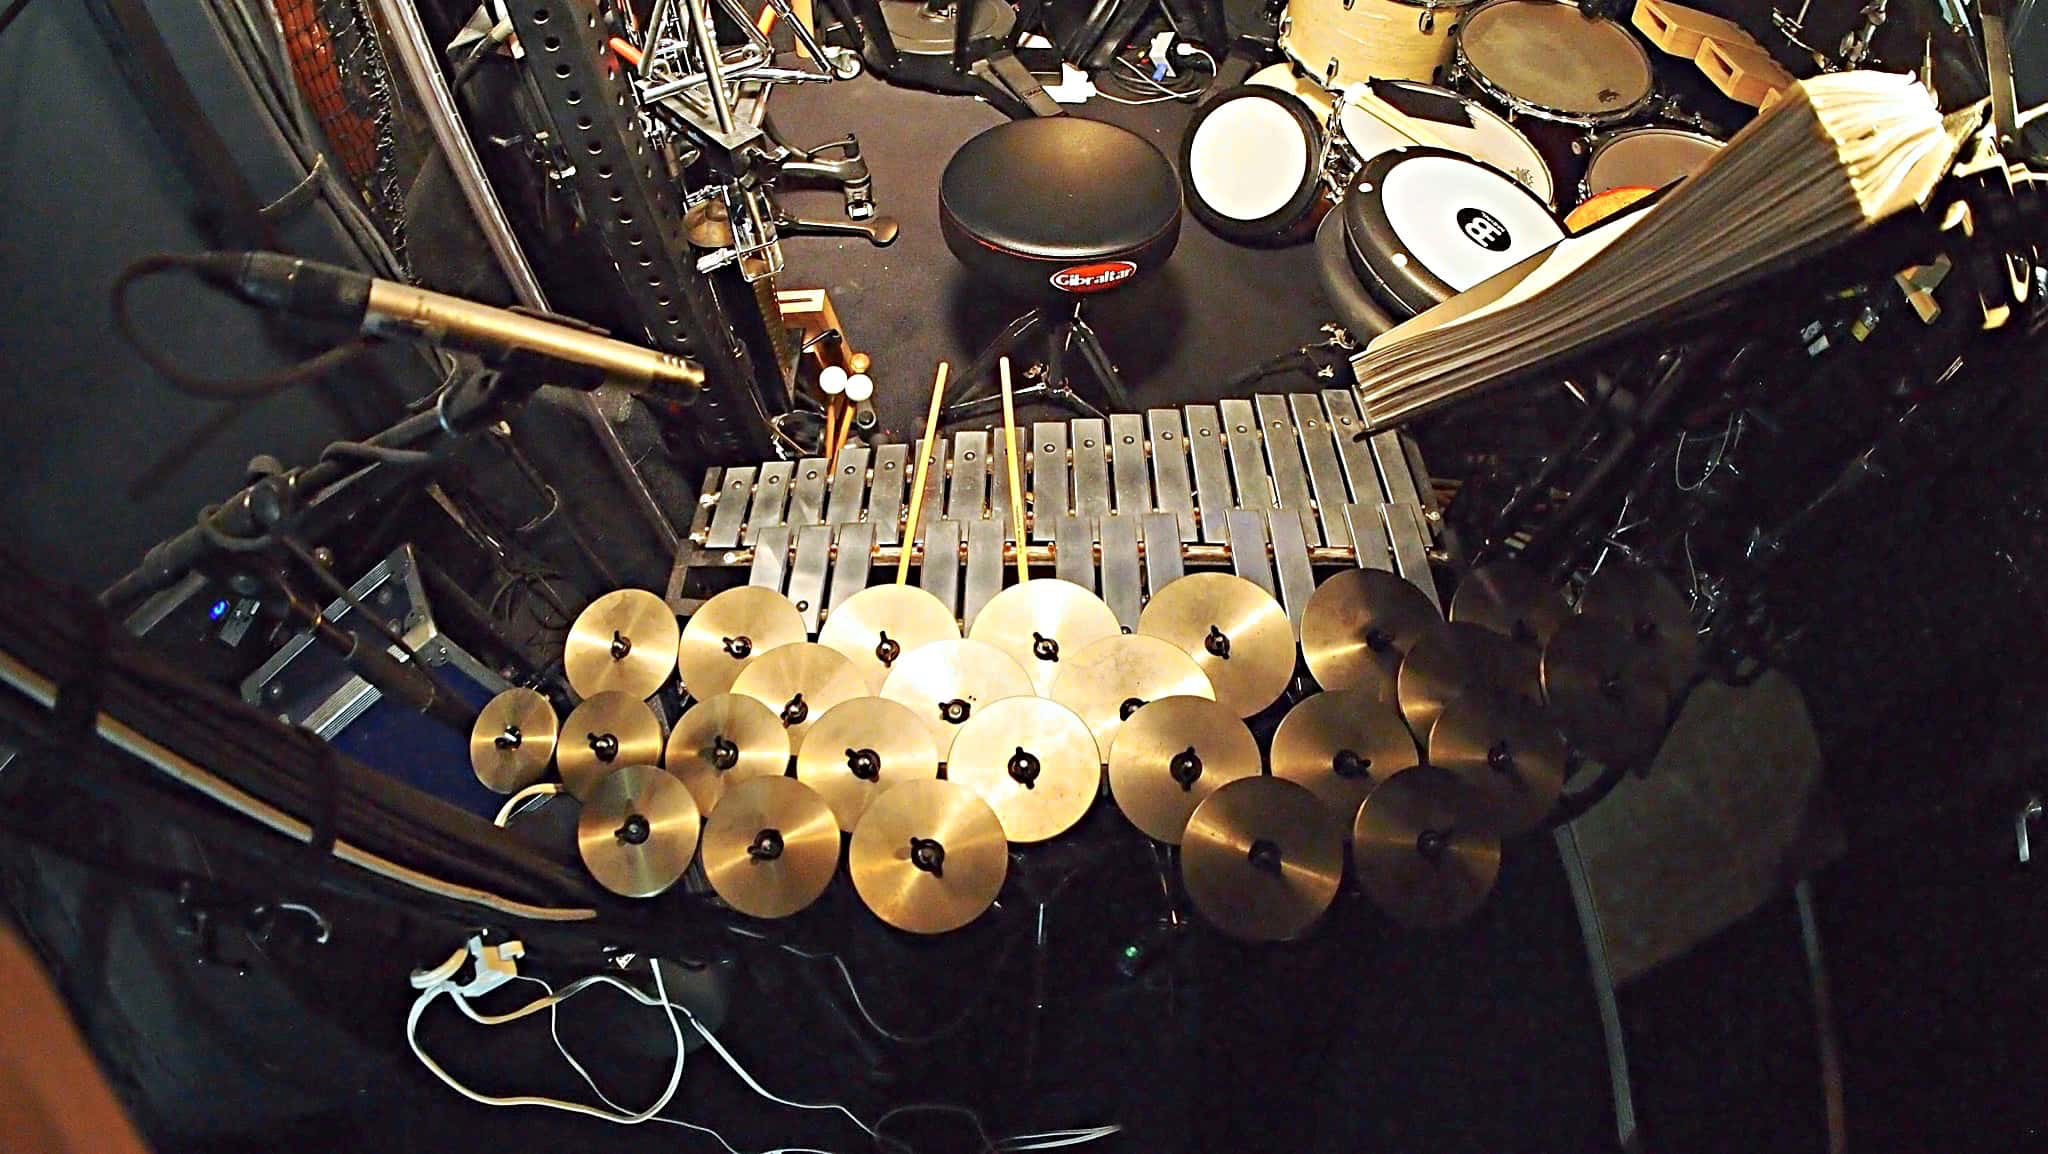 Dave Roth's percussion setup for the Broadway production of Finding Neverland at the Lunt-Fontanne Theatre.